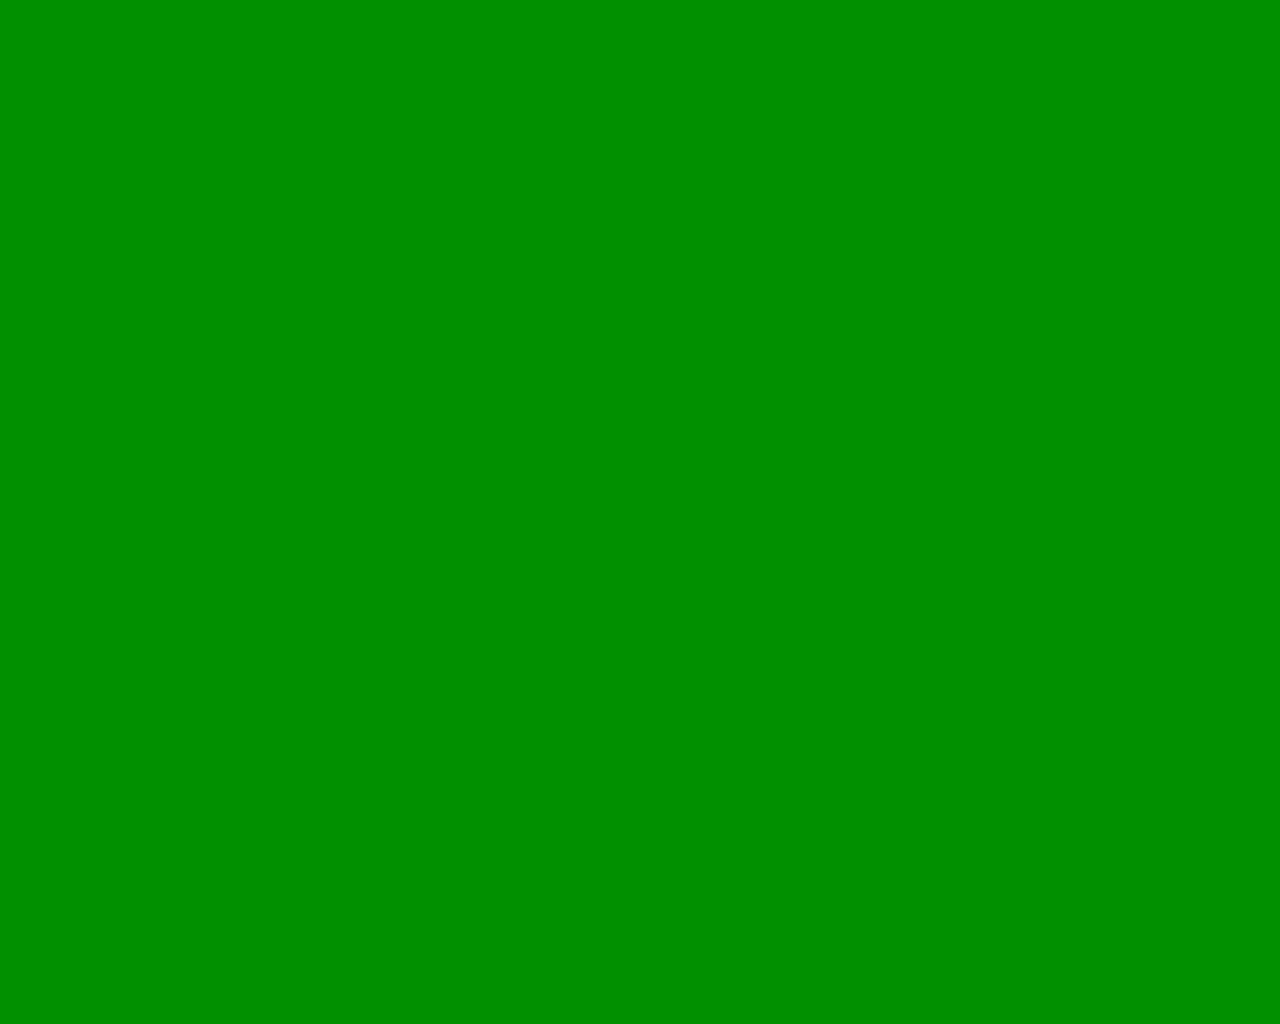 1280x1024 Islamic Green Solid Color Background